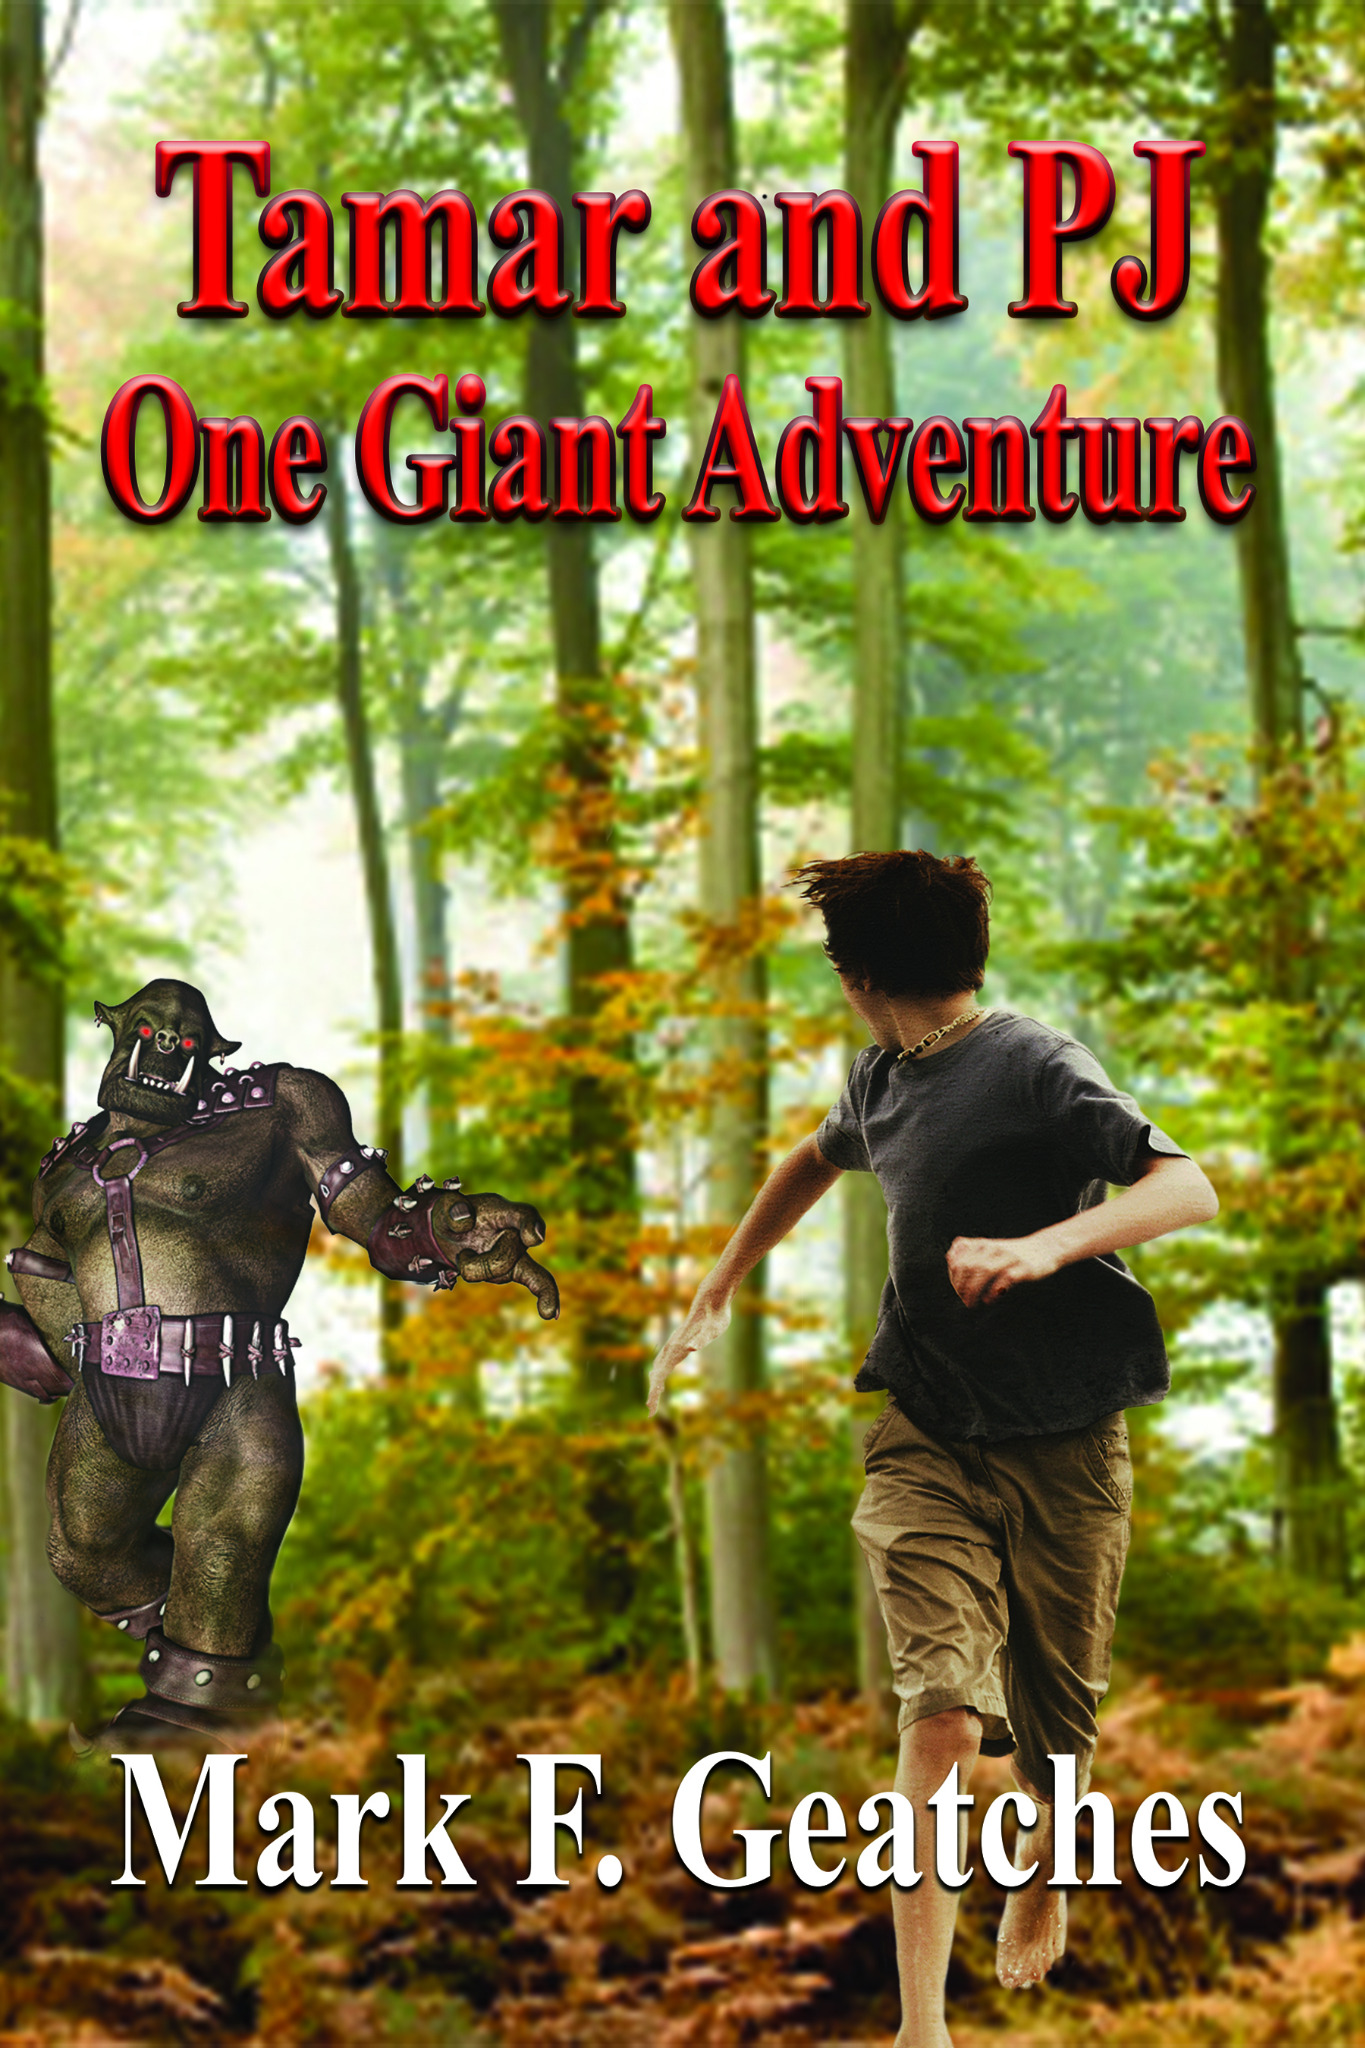 Tamar and PJ One Giant Adventure